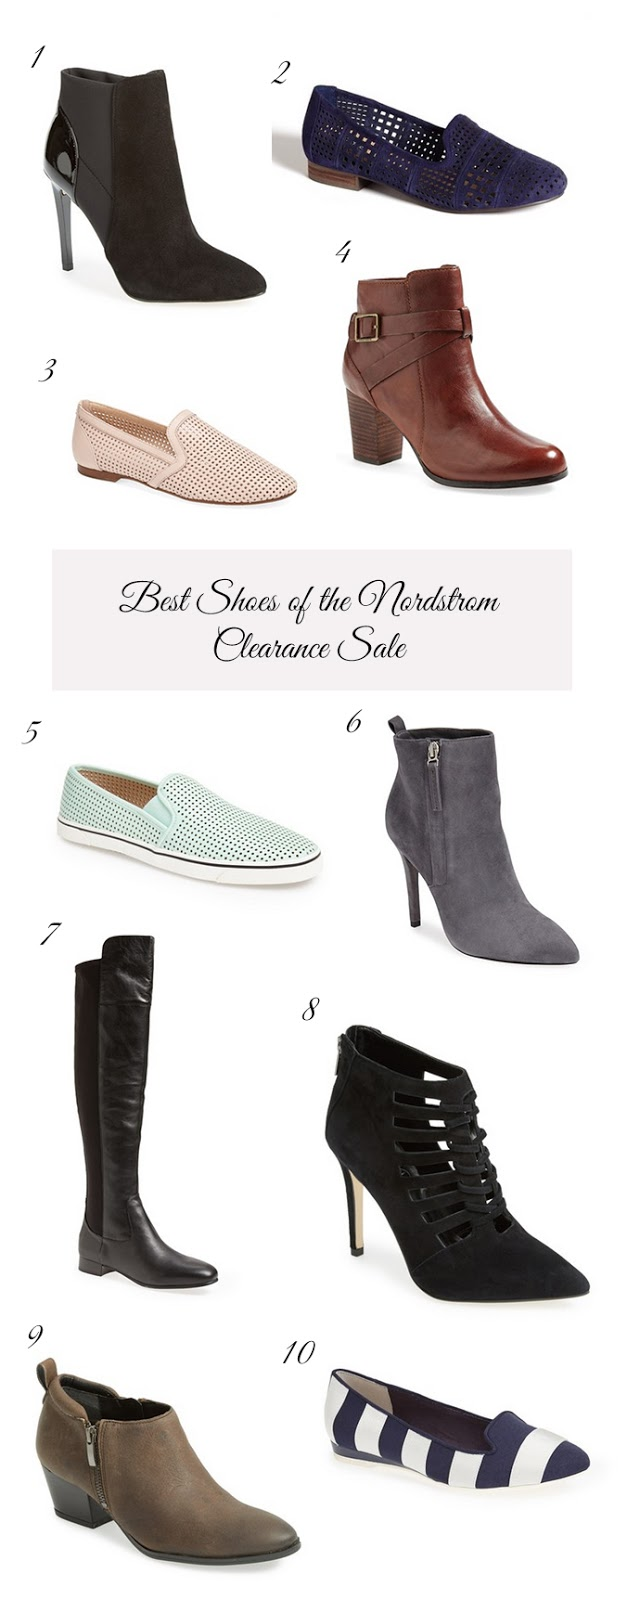 Nordstrom Clearance sale, best picks of the Nordstrom Clearance Sale, Nordstrom Sale, #nsale, Nordstrom, best deals, best sales, sales, booties, boots sale